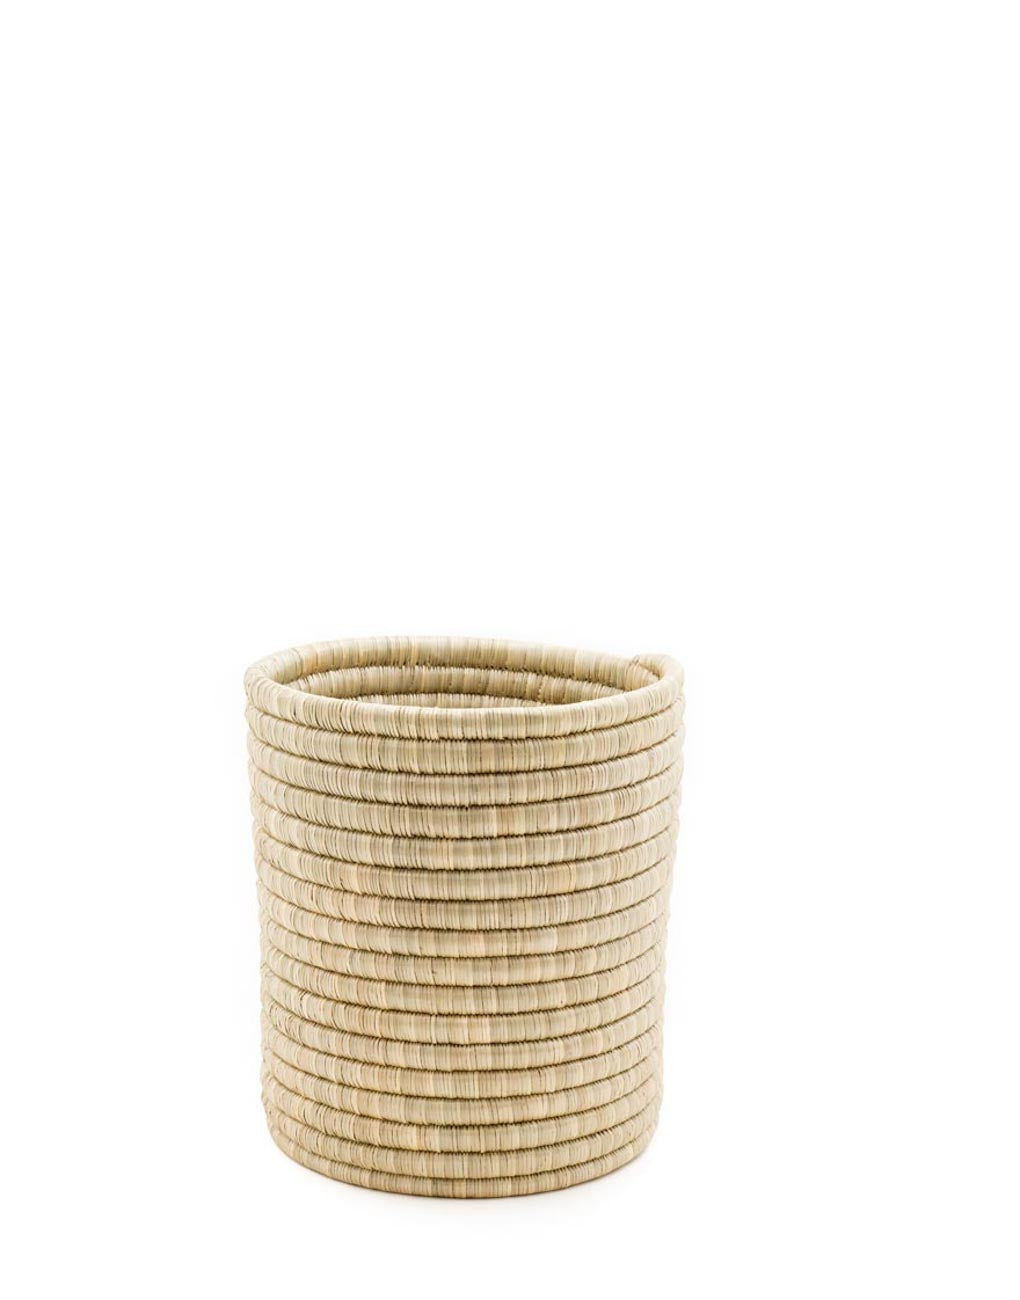 Medium Natural Woven Bath Bin | The Little Market